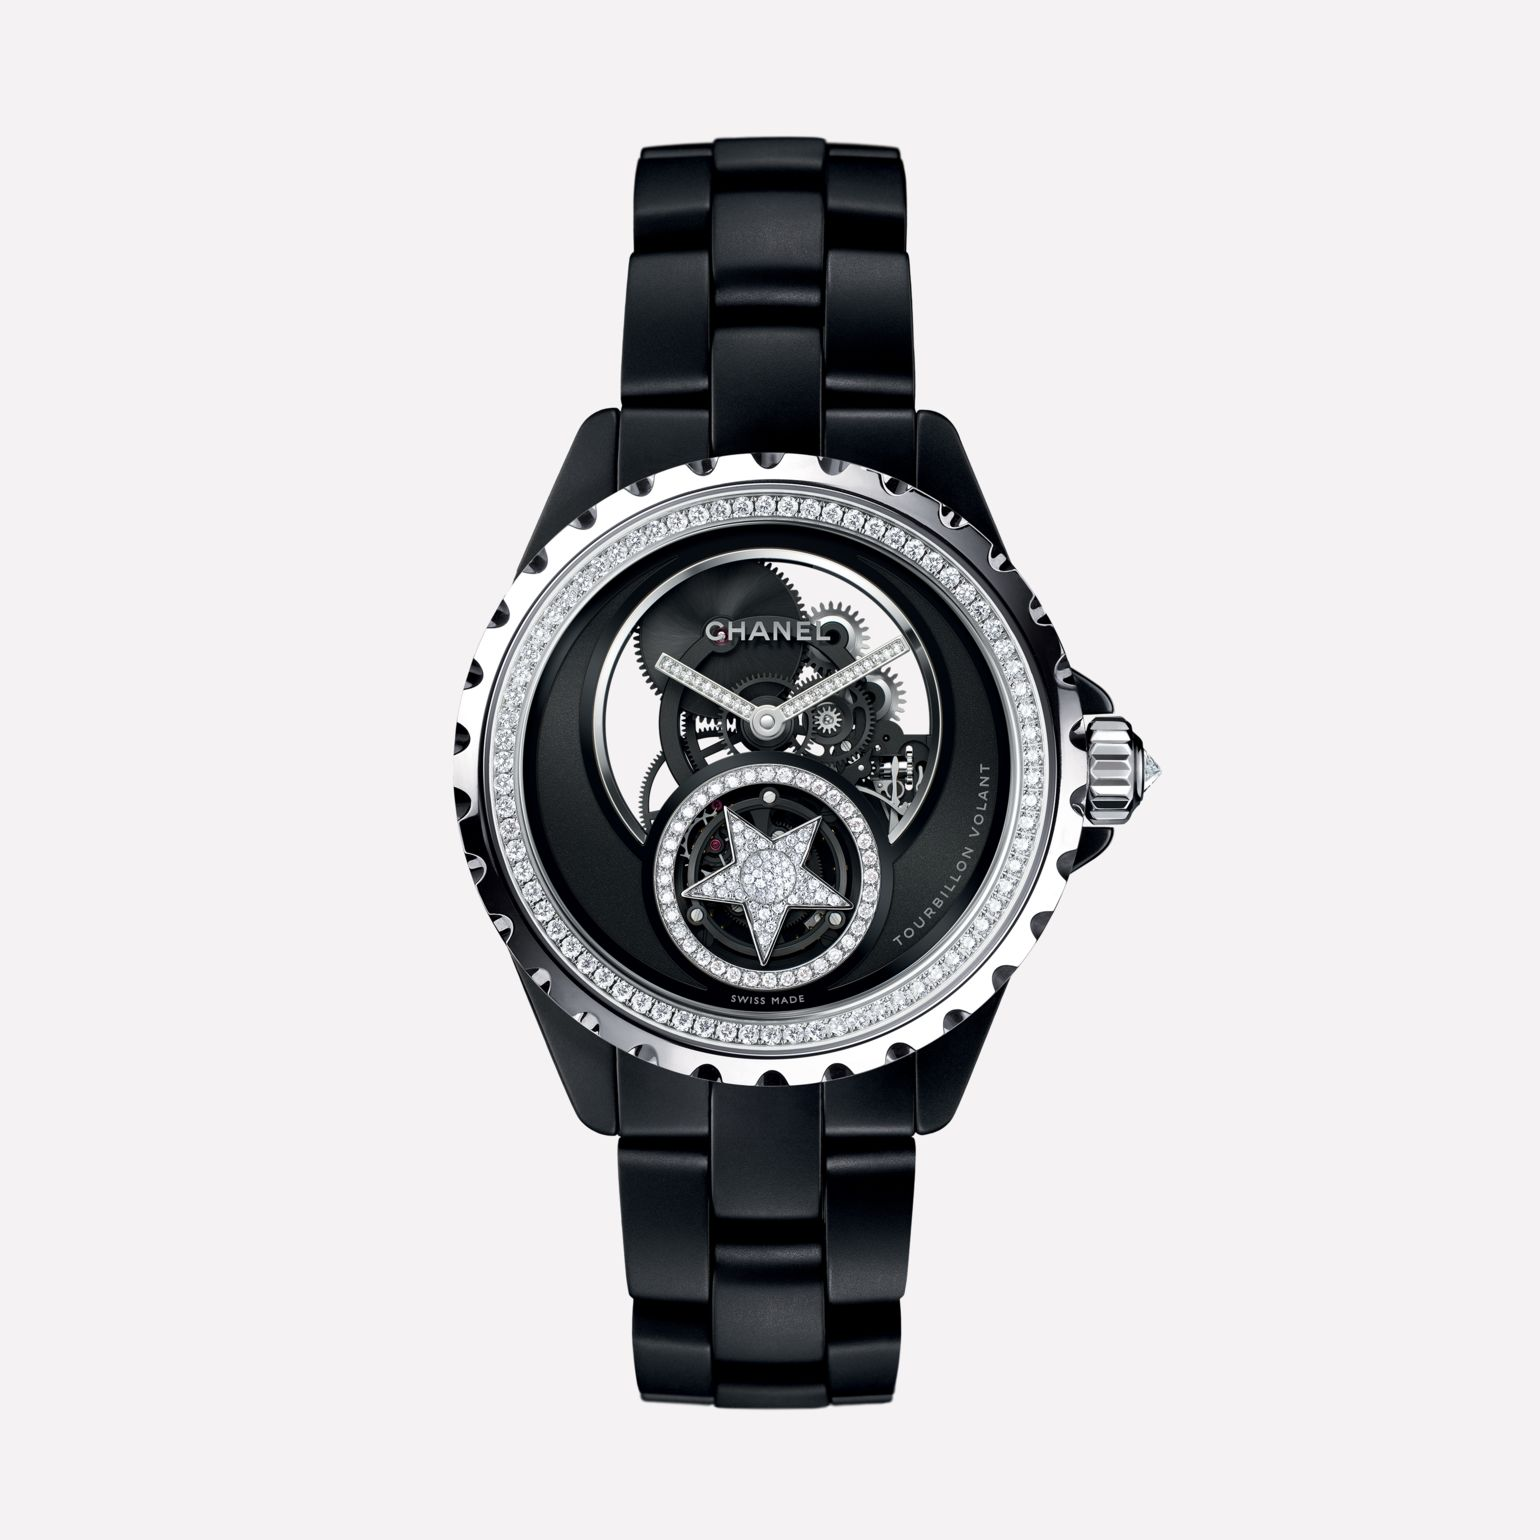 J12 Skeleton Flying Tourbillon Watch, 38 mm White gold and matte black highly-resistant ceramic, bezel and crown set with diamonds, openwork dial